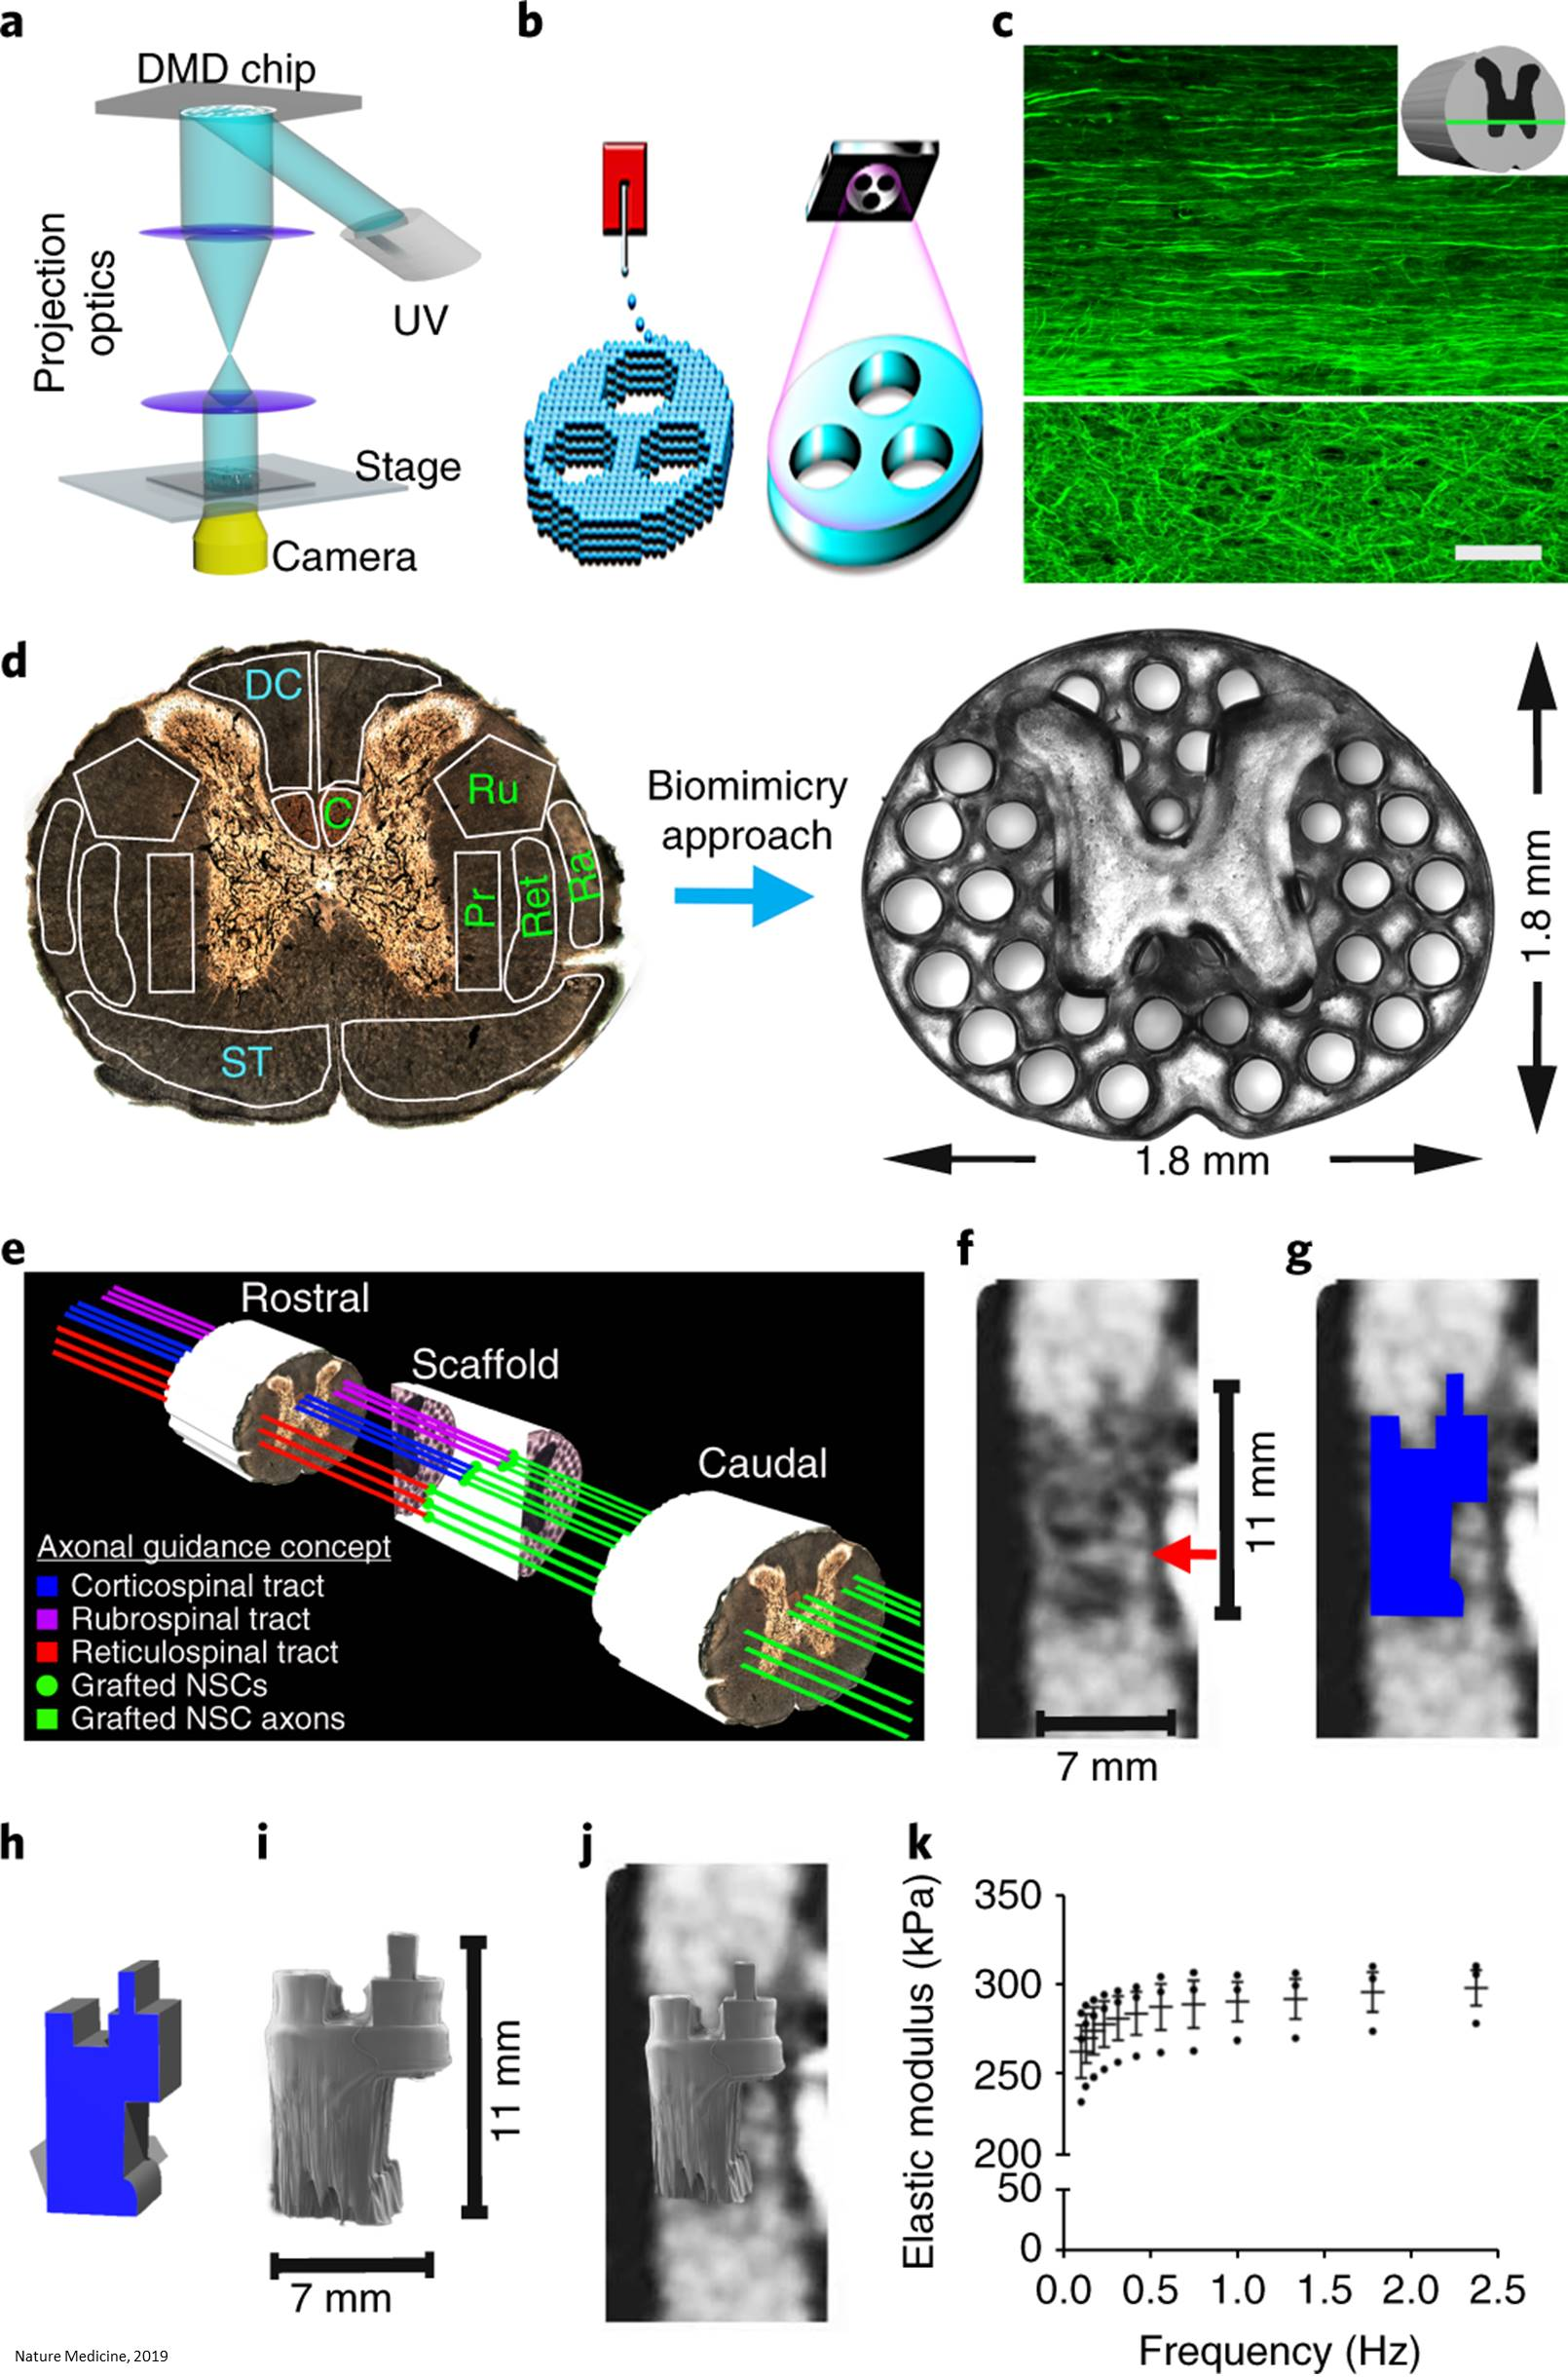 3D printed implant promotes nerve cell growth to treat spinal cord injury